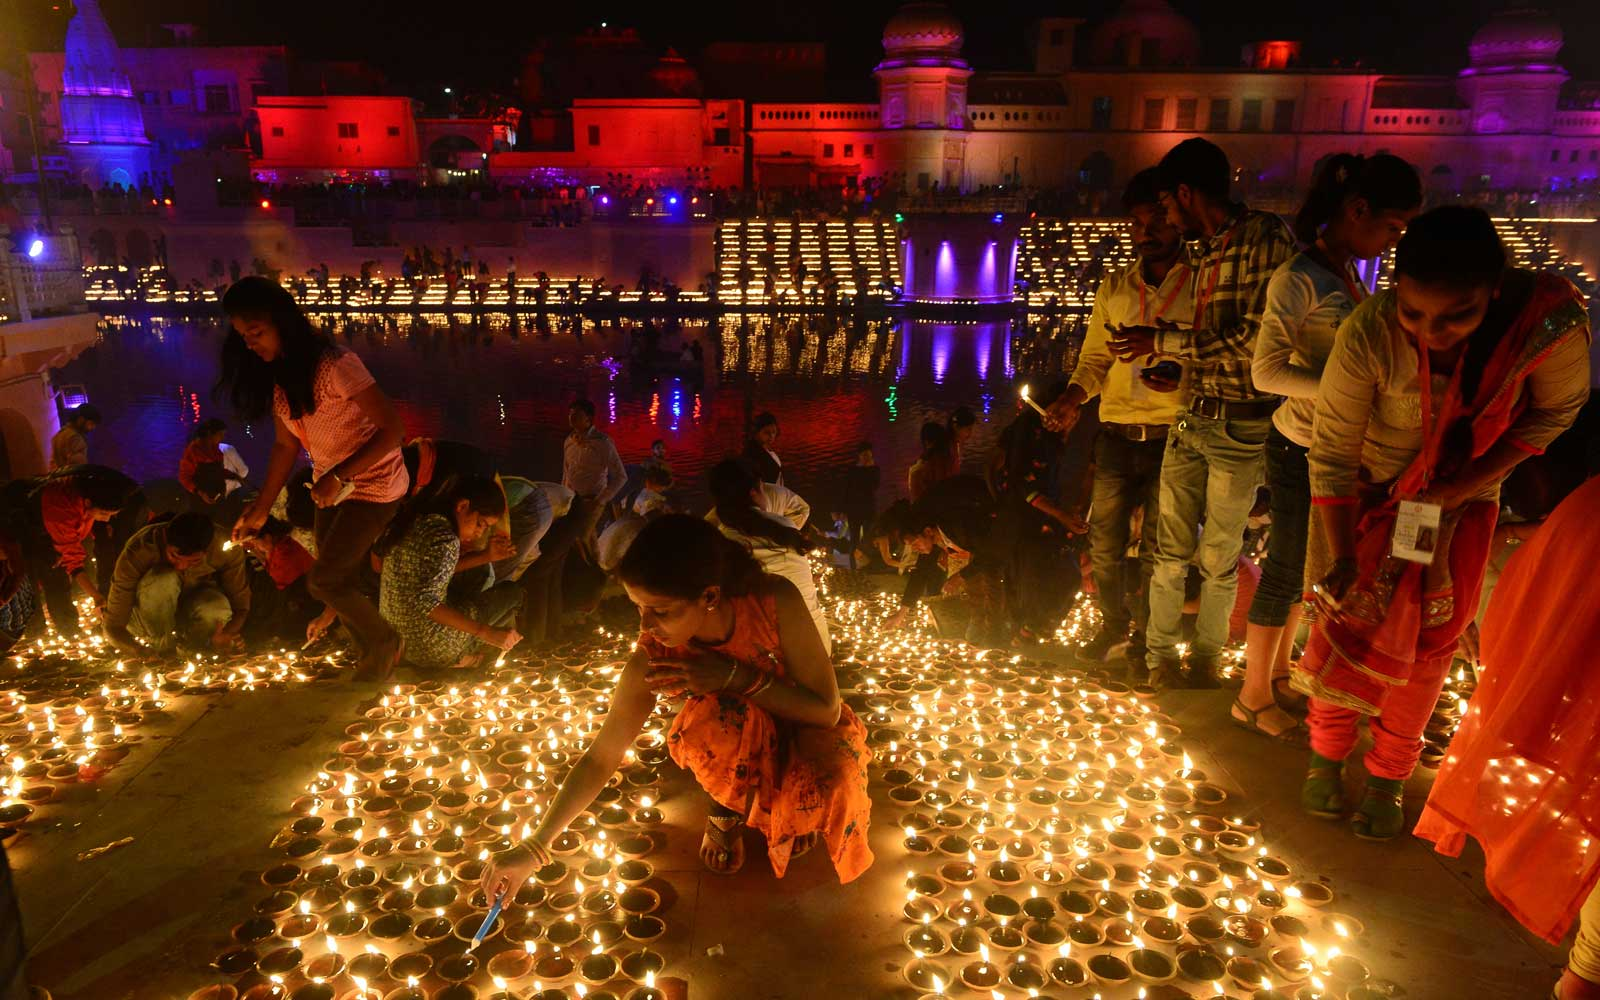 This Indian City Lit a Record-breaking 300,000 Clay Lamps to Celebrate Diwali